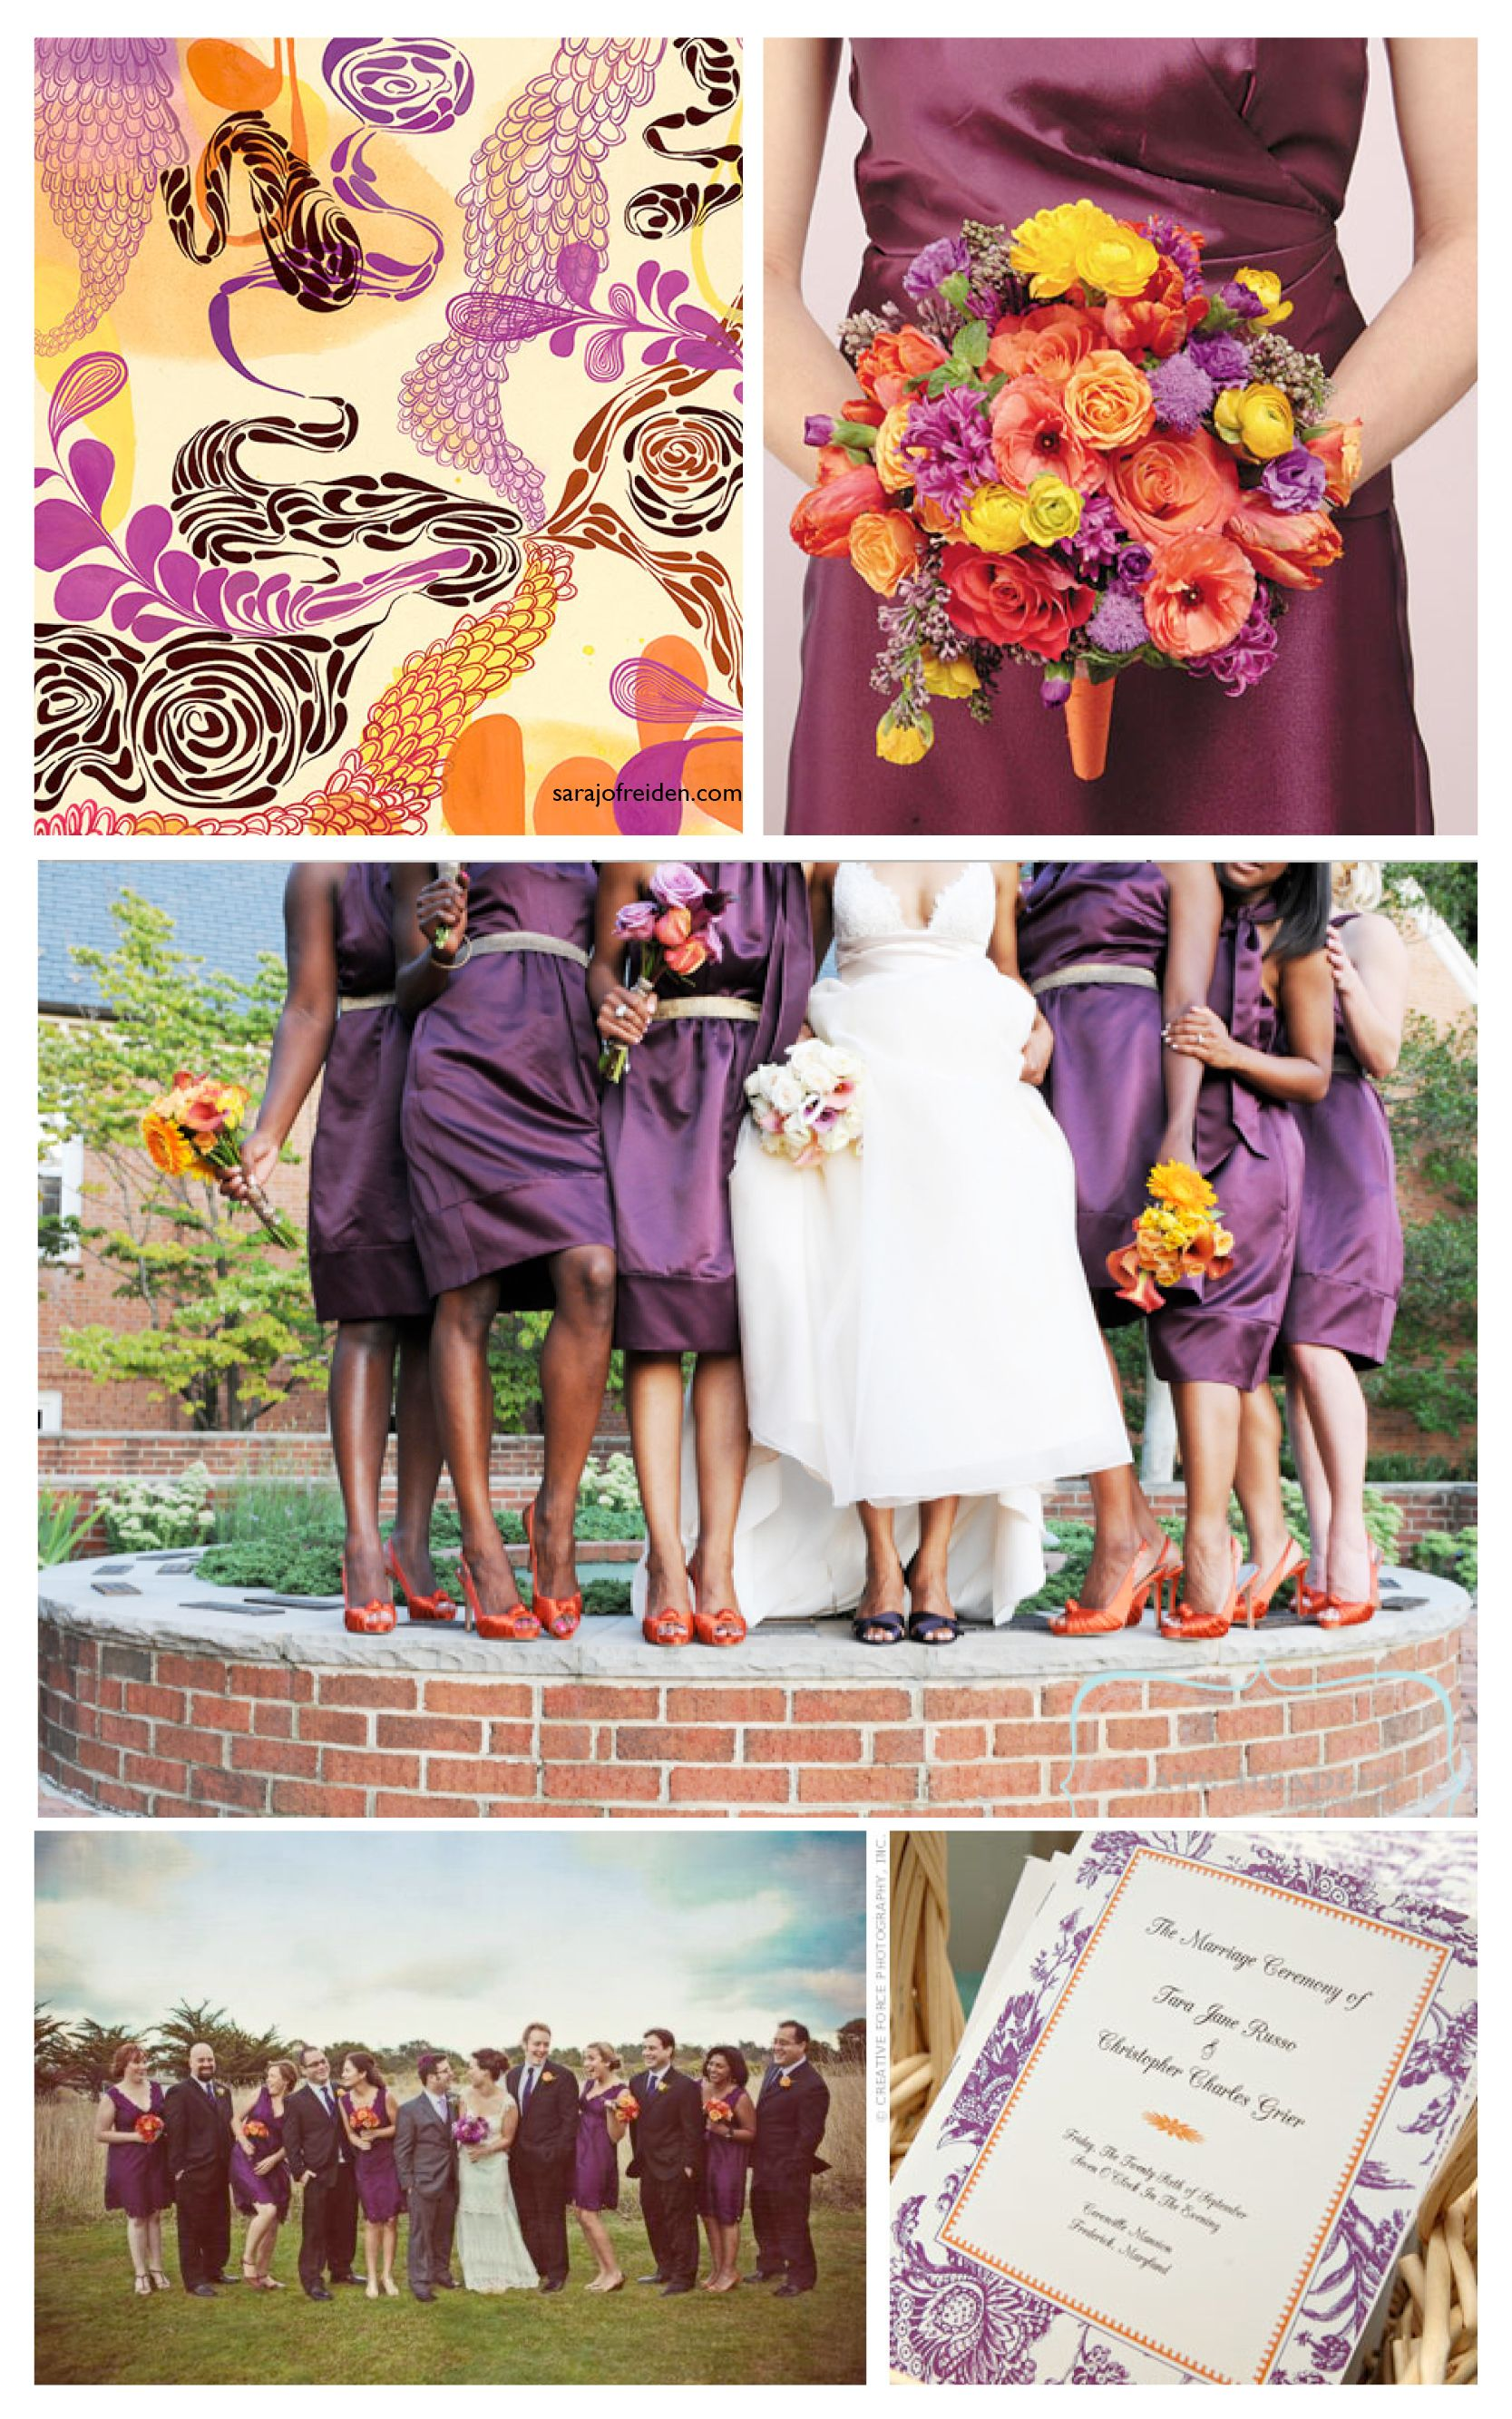 Neat color scheme, especially for a Fall wedding  Love the purple & orange!!